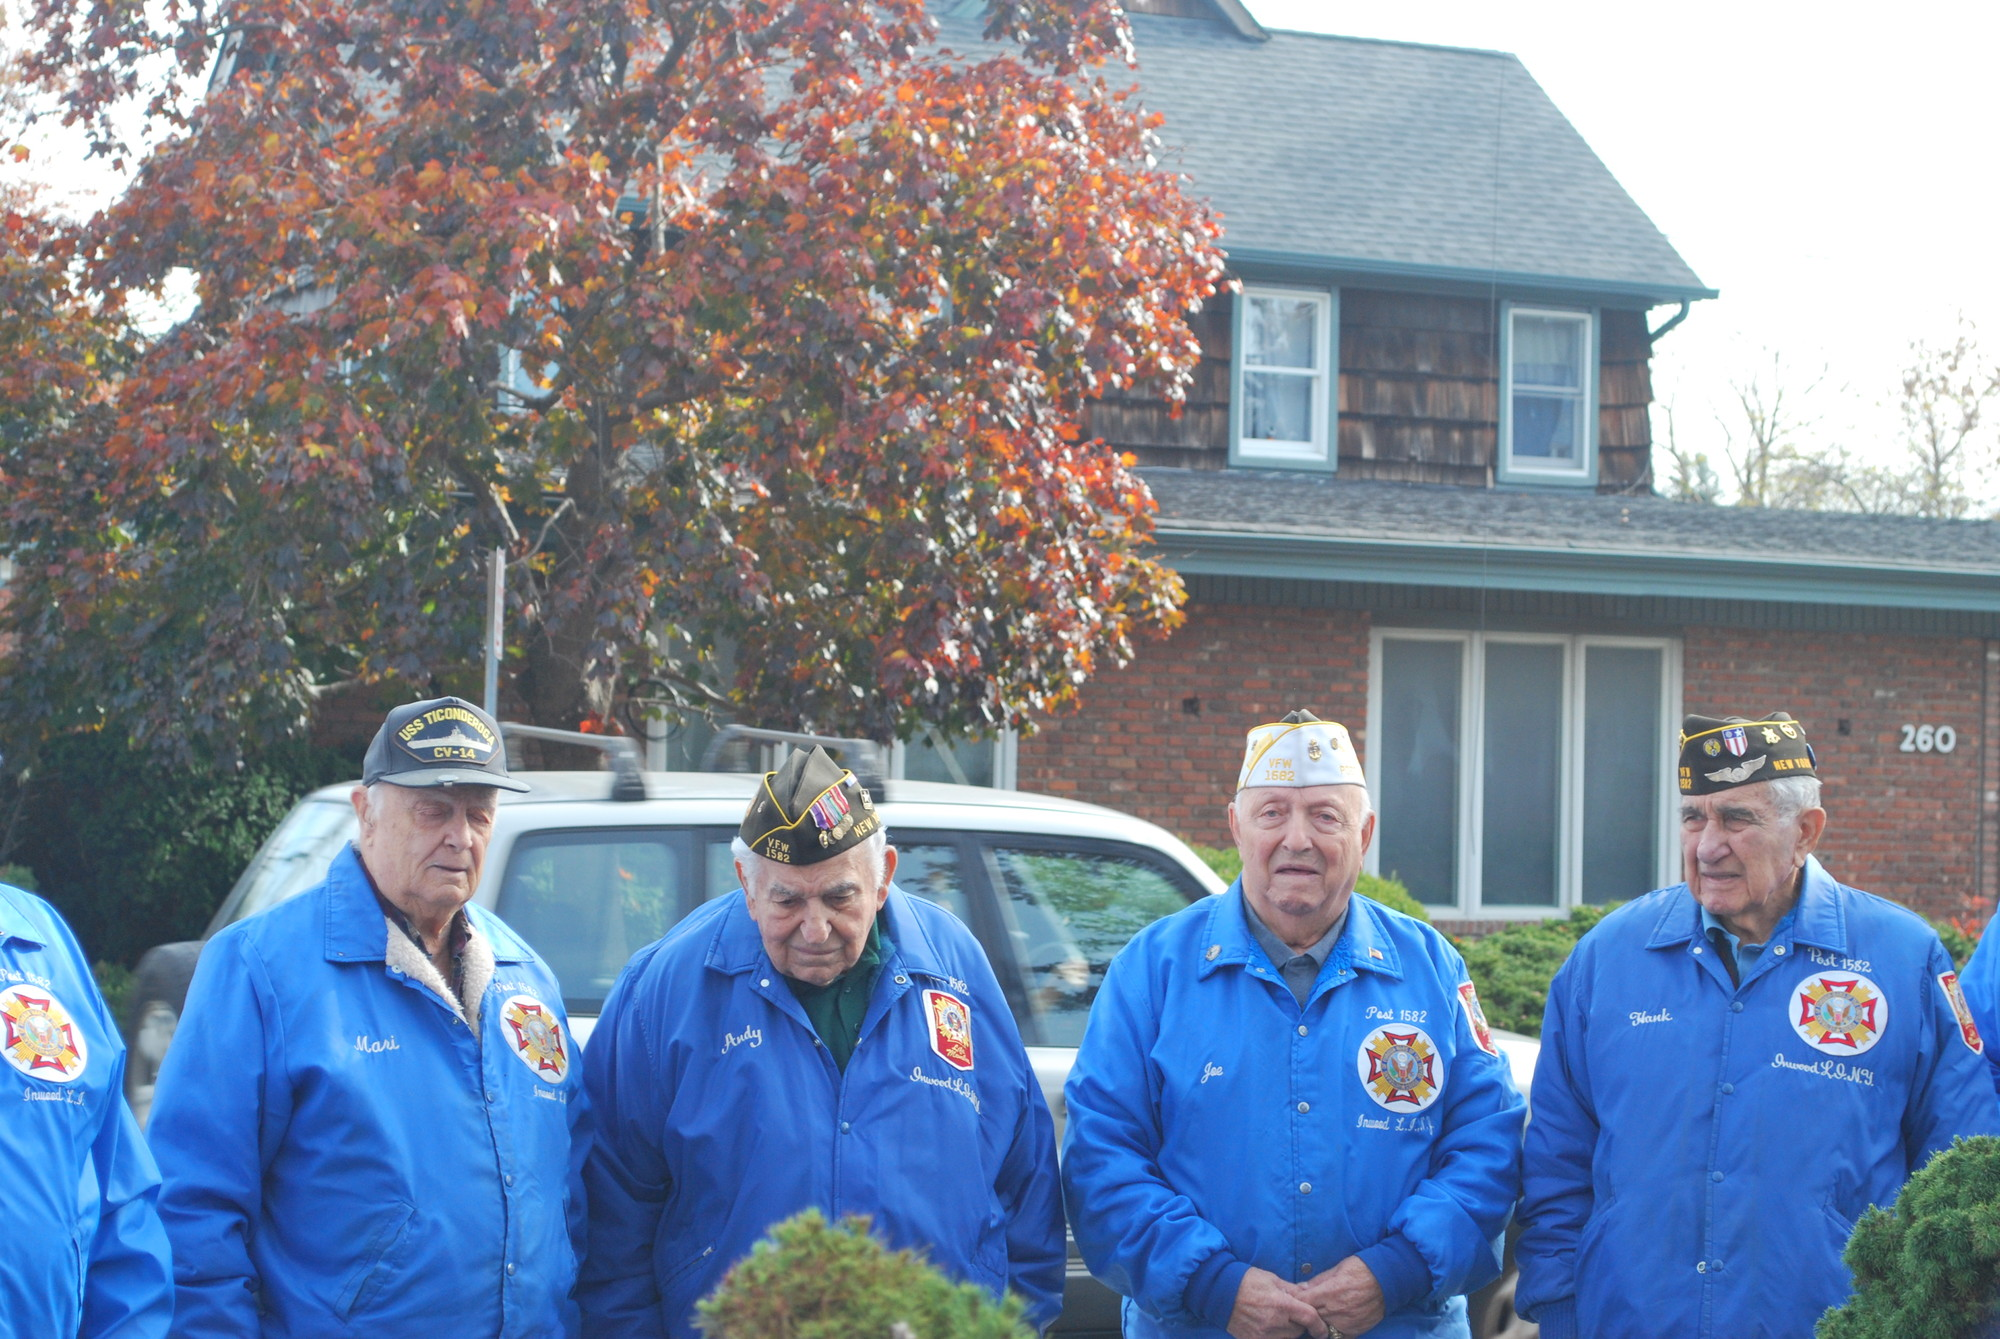 Inwood post members, including Village of Cedarhurst Mayor Andrew Parise, paid tribute to fellow soldiers at the Veterans Day ceremony.